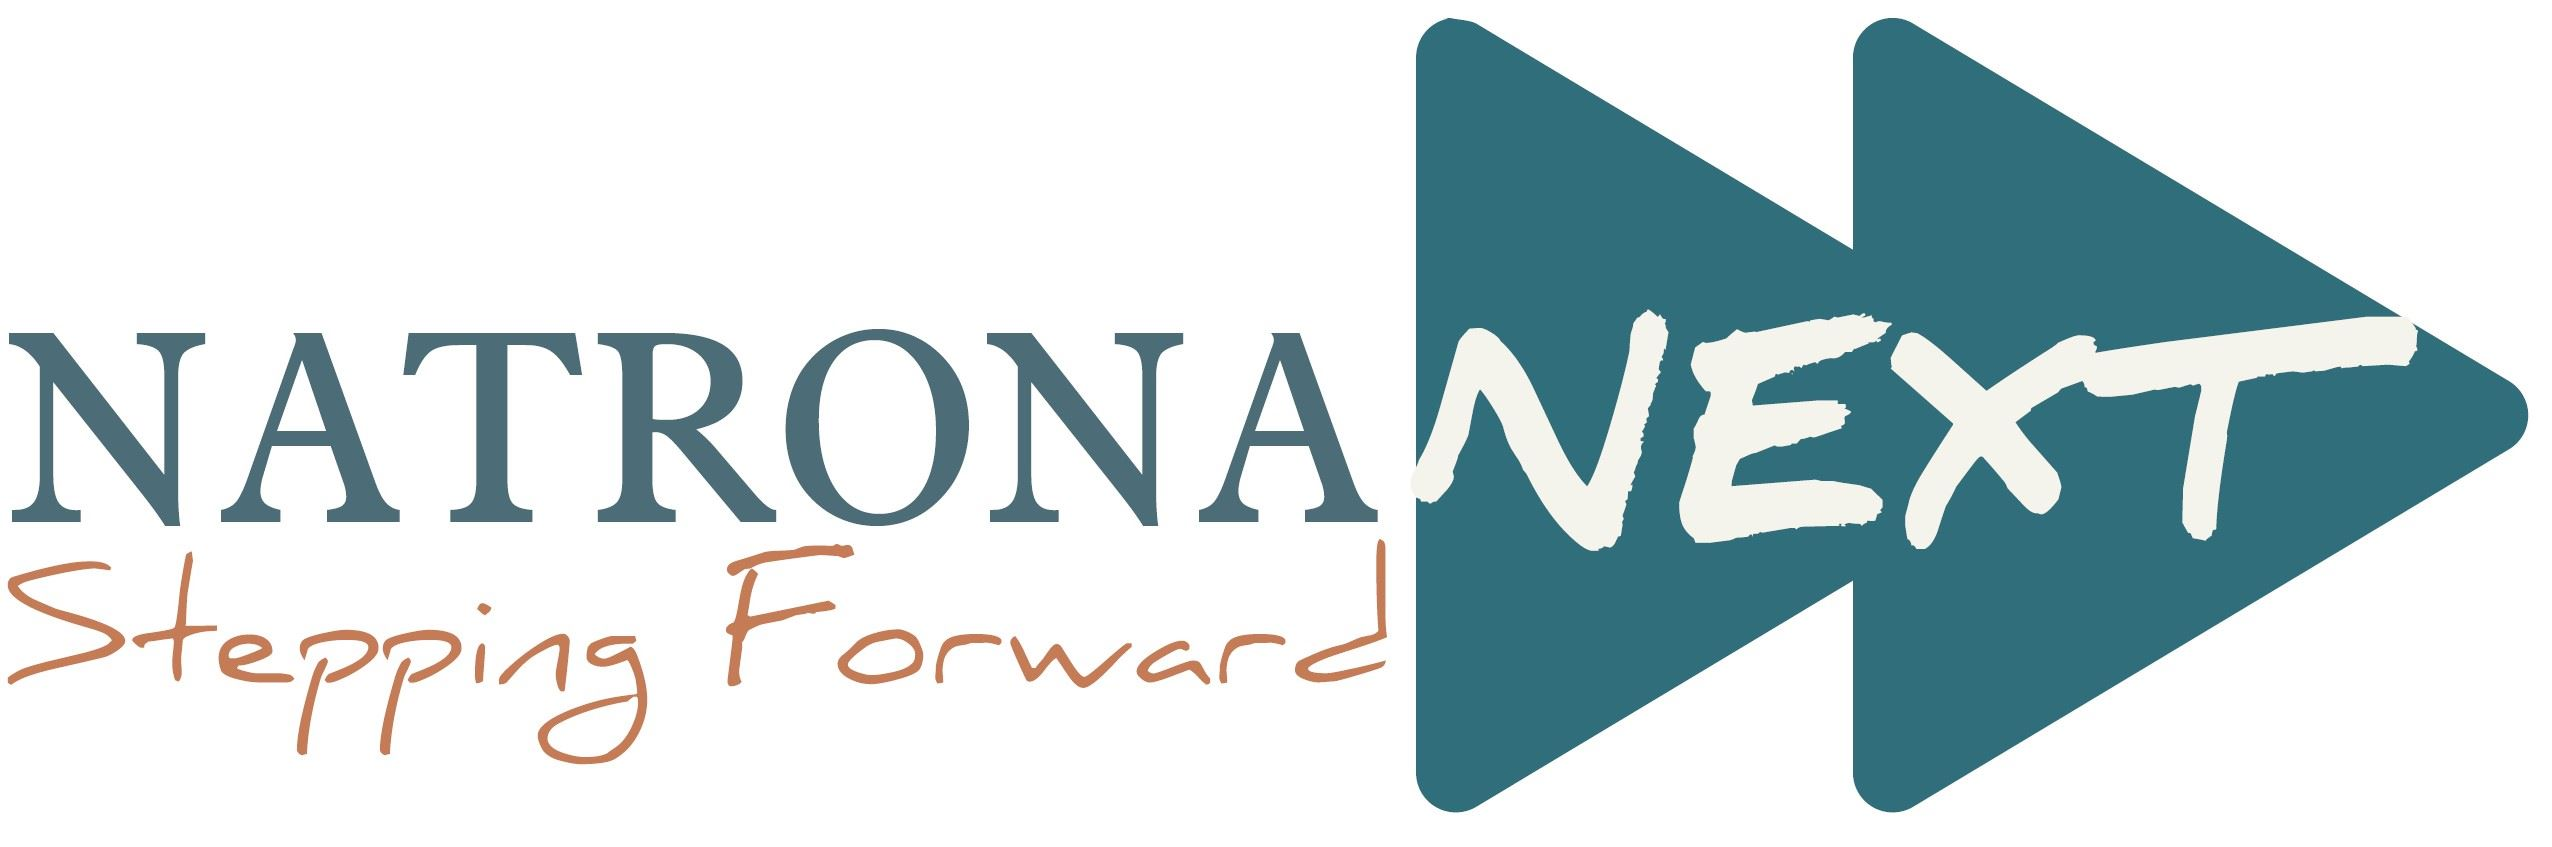 Natrona Next Stepping Forward Graphic Opens in new window